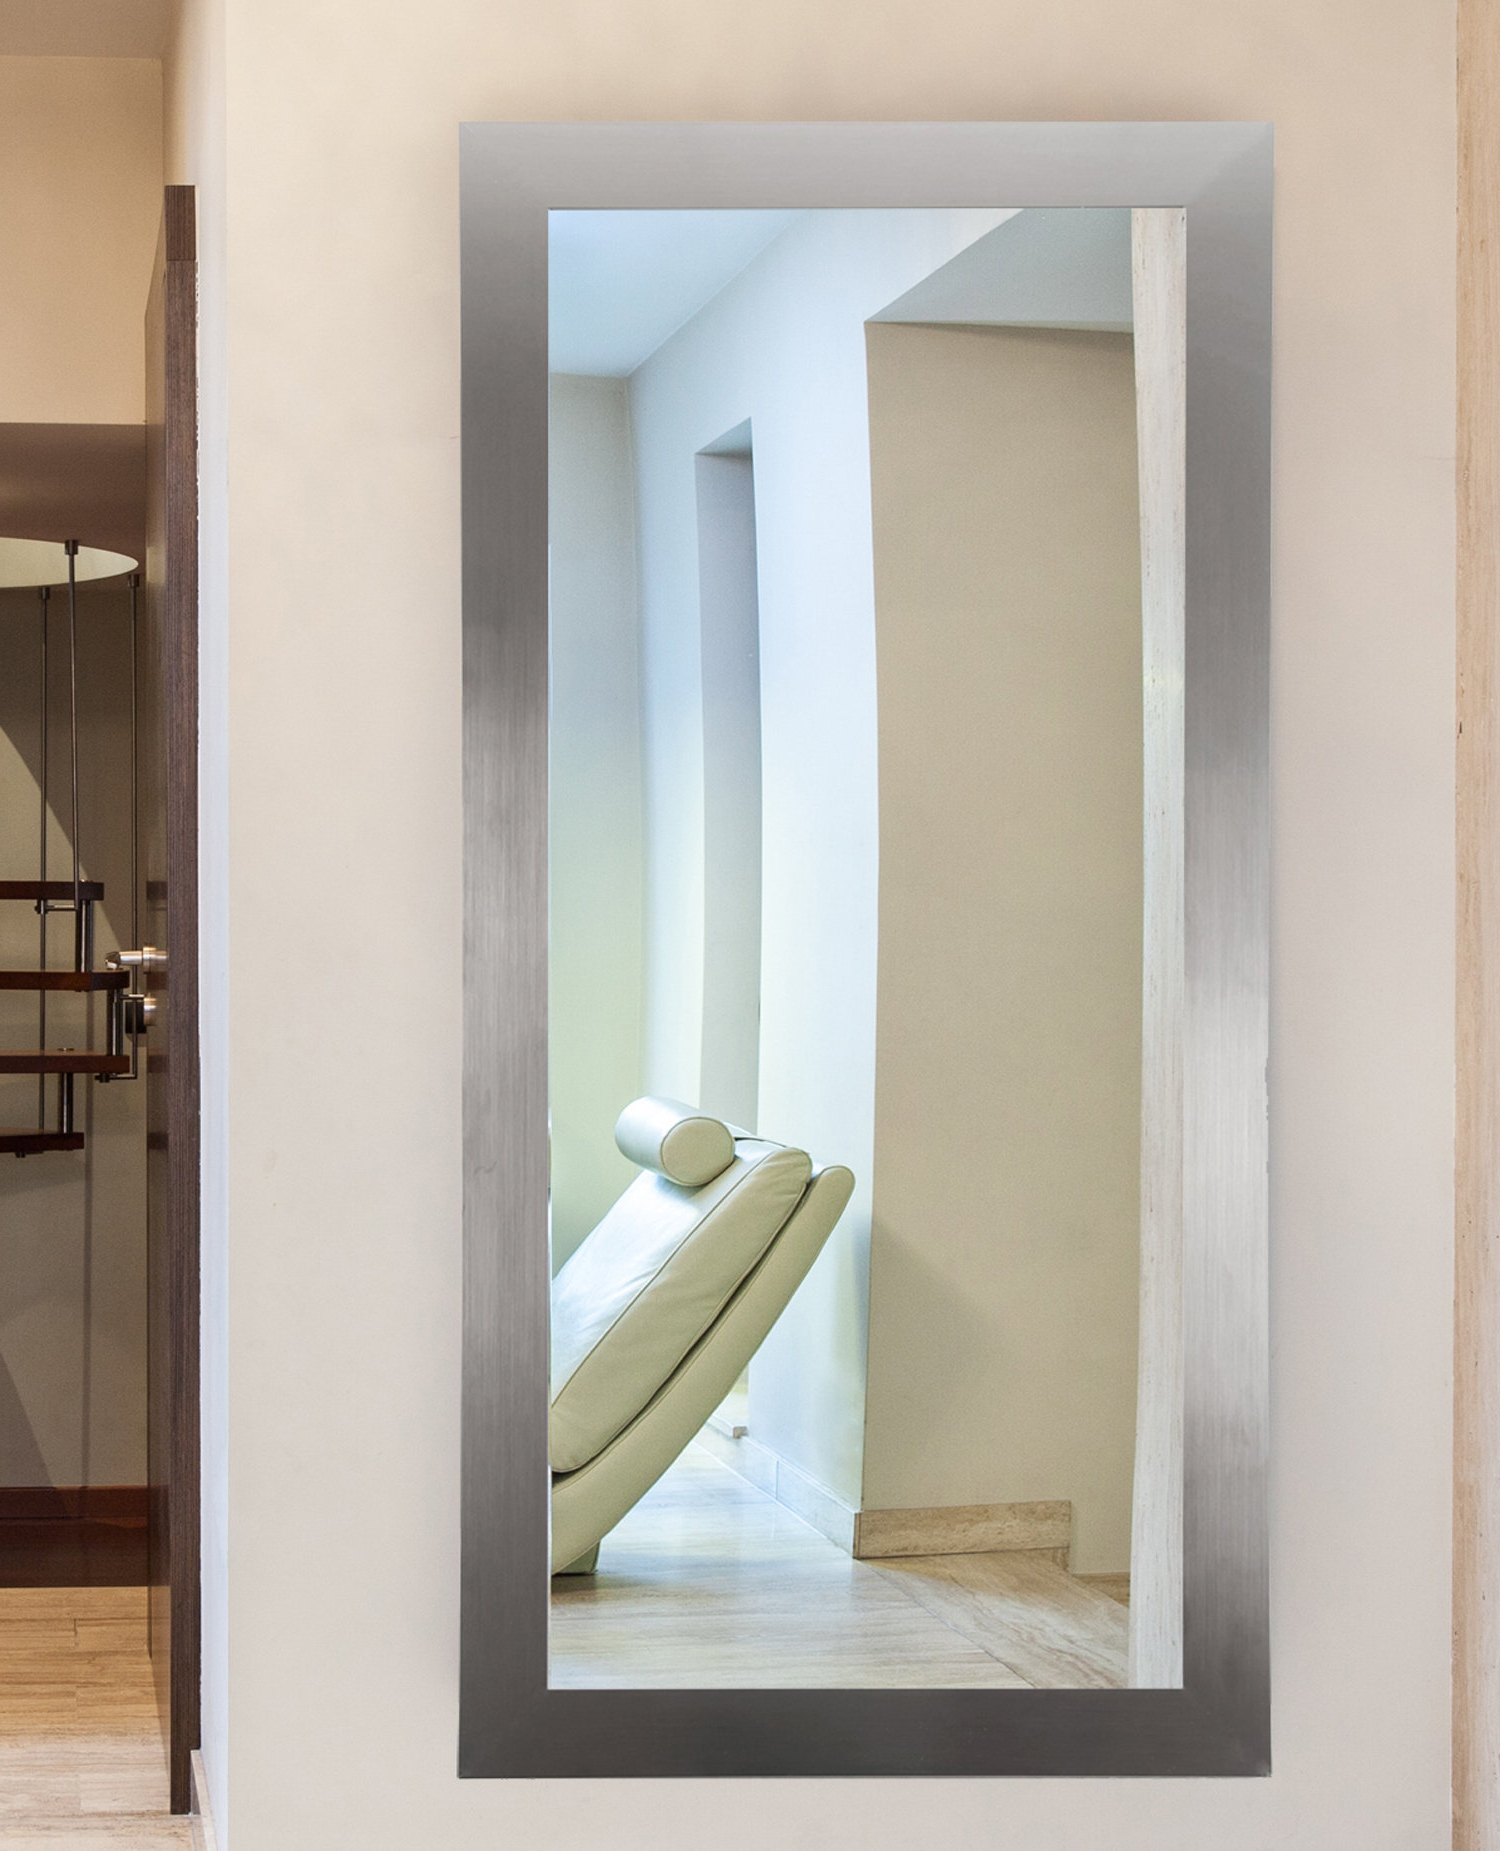 Sartain Modern & Contemporary Wall Mirror Intended For Recent Bathroom Full Wall Mirrors (View 20 of 20)